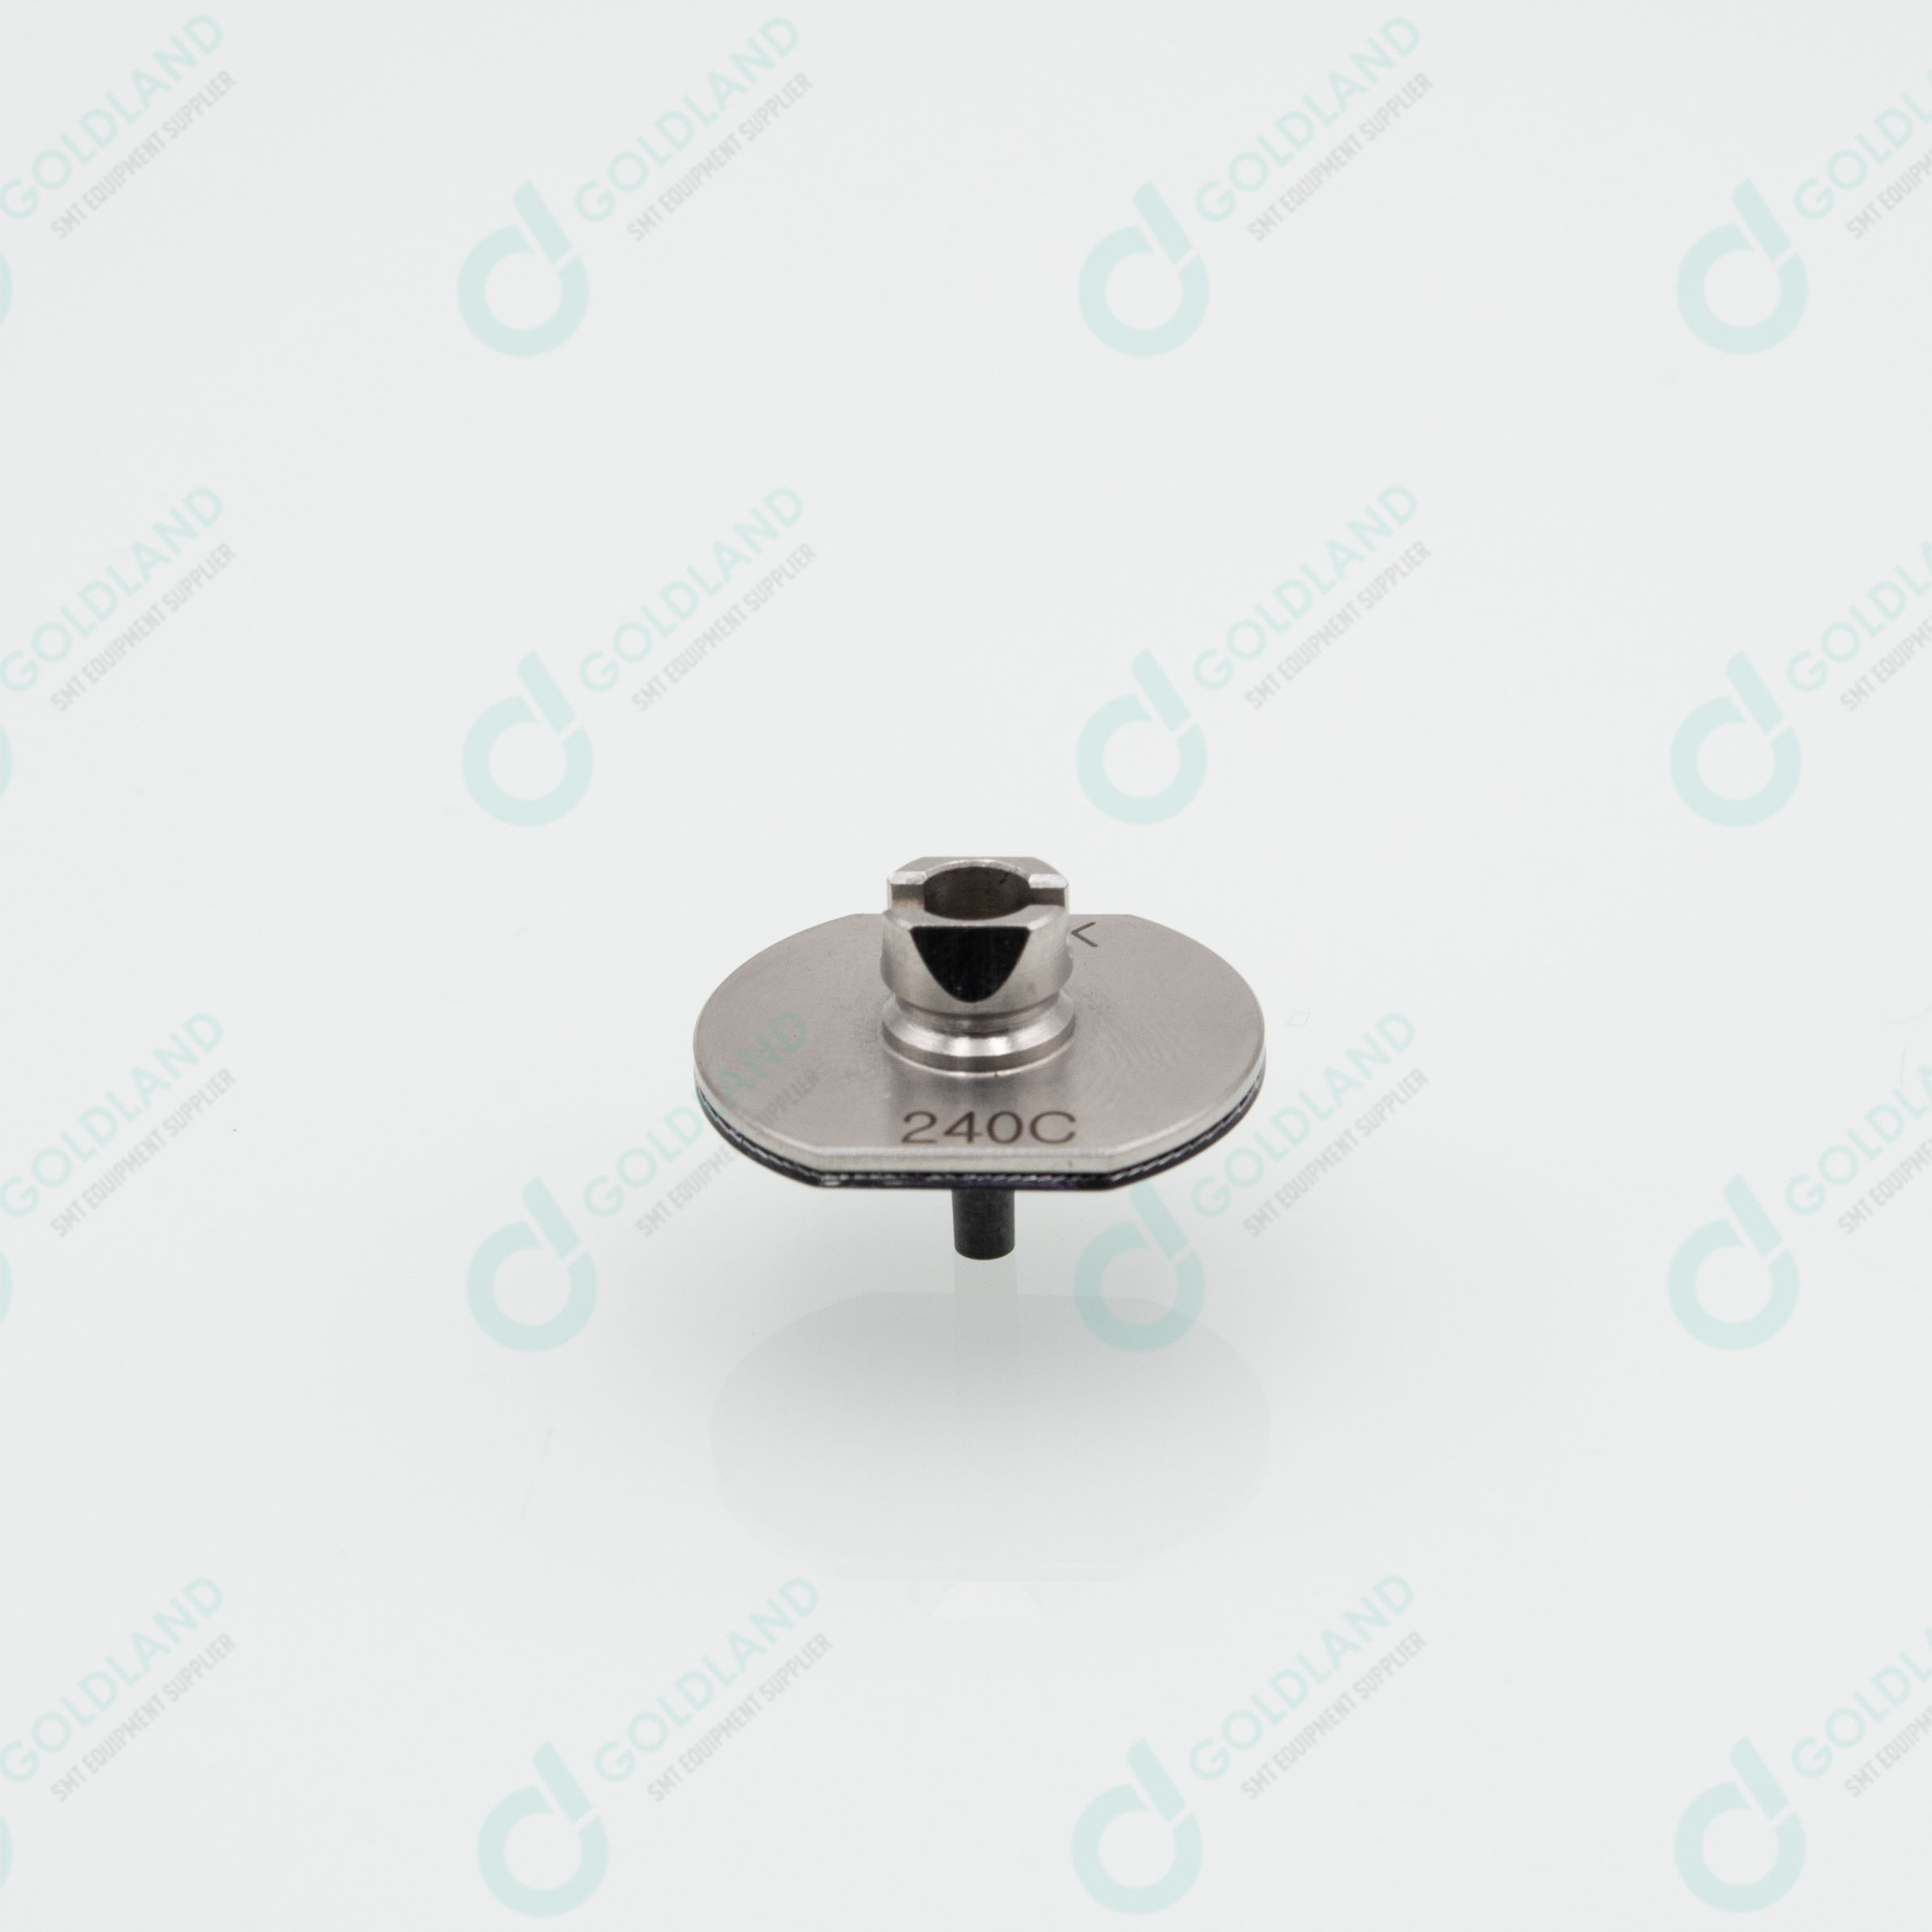 N610062681AA Panasonic 240C Nozzle for Panasonic smt machine parts